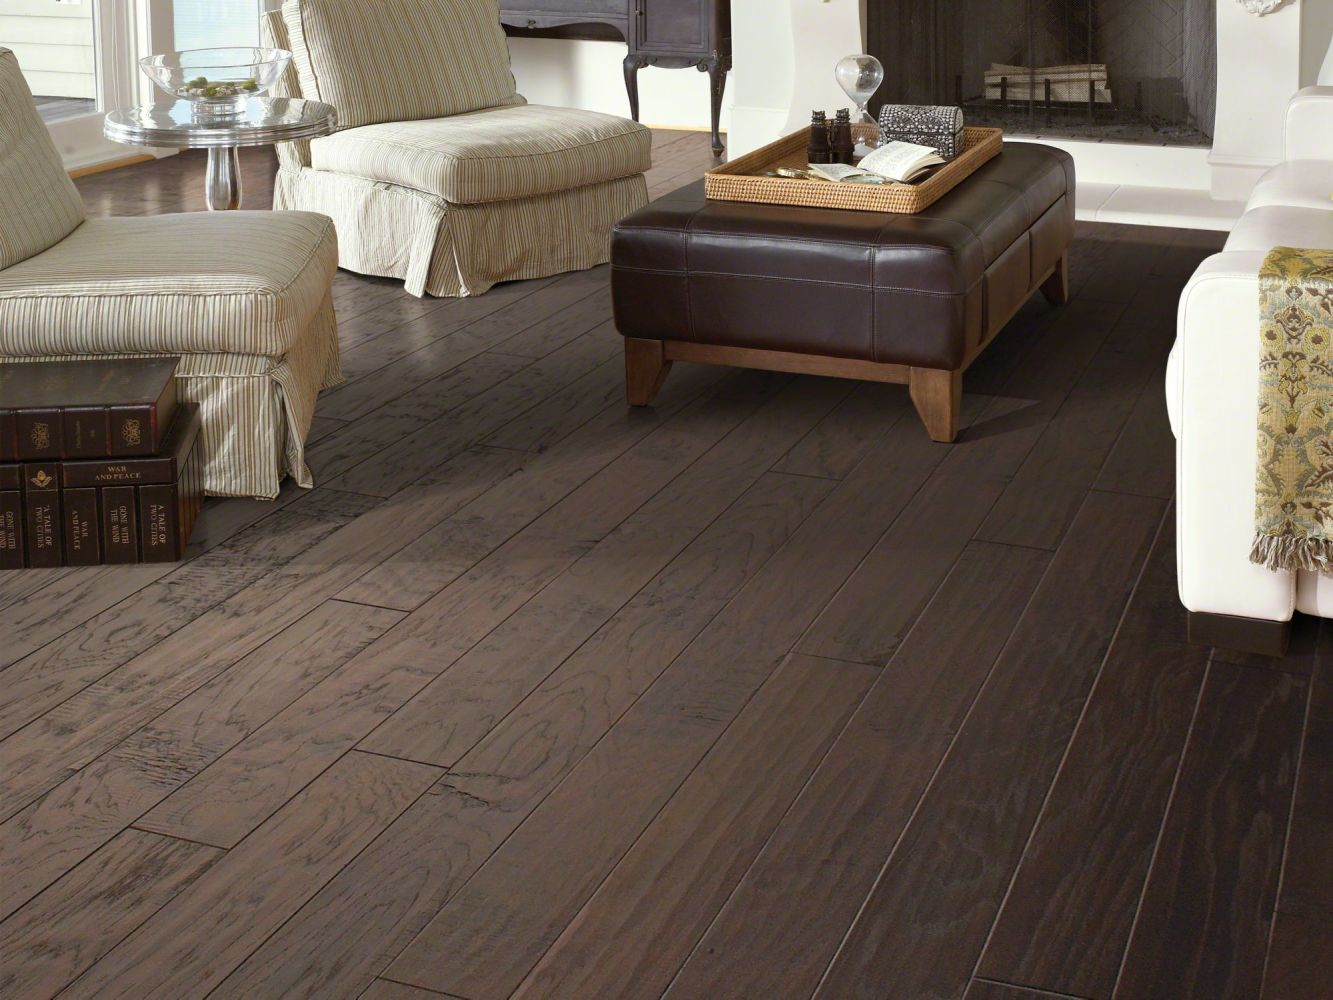 Shaw Floors Shaw Hardwoods Highlands 5 Olde English 00885_XW004